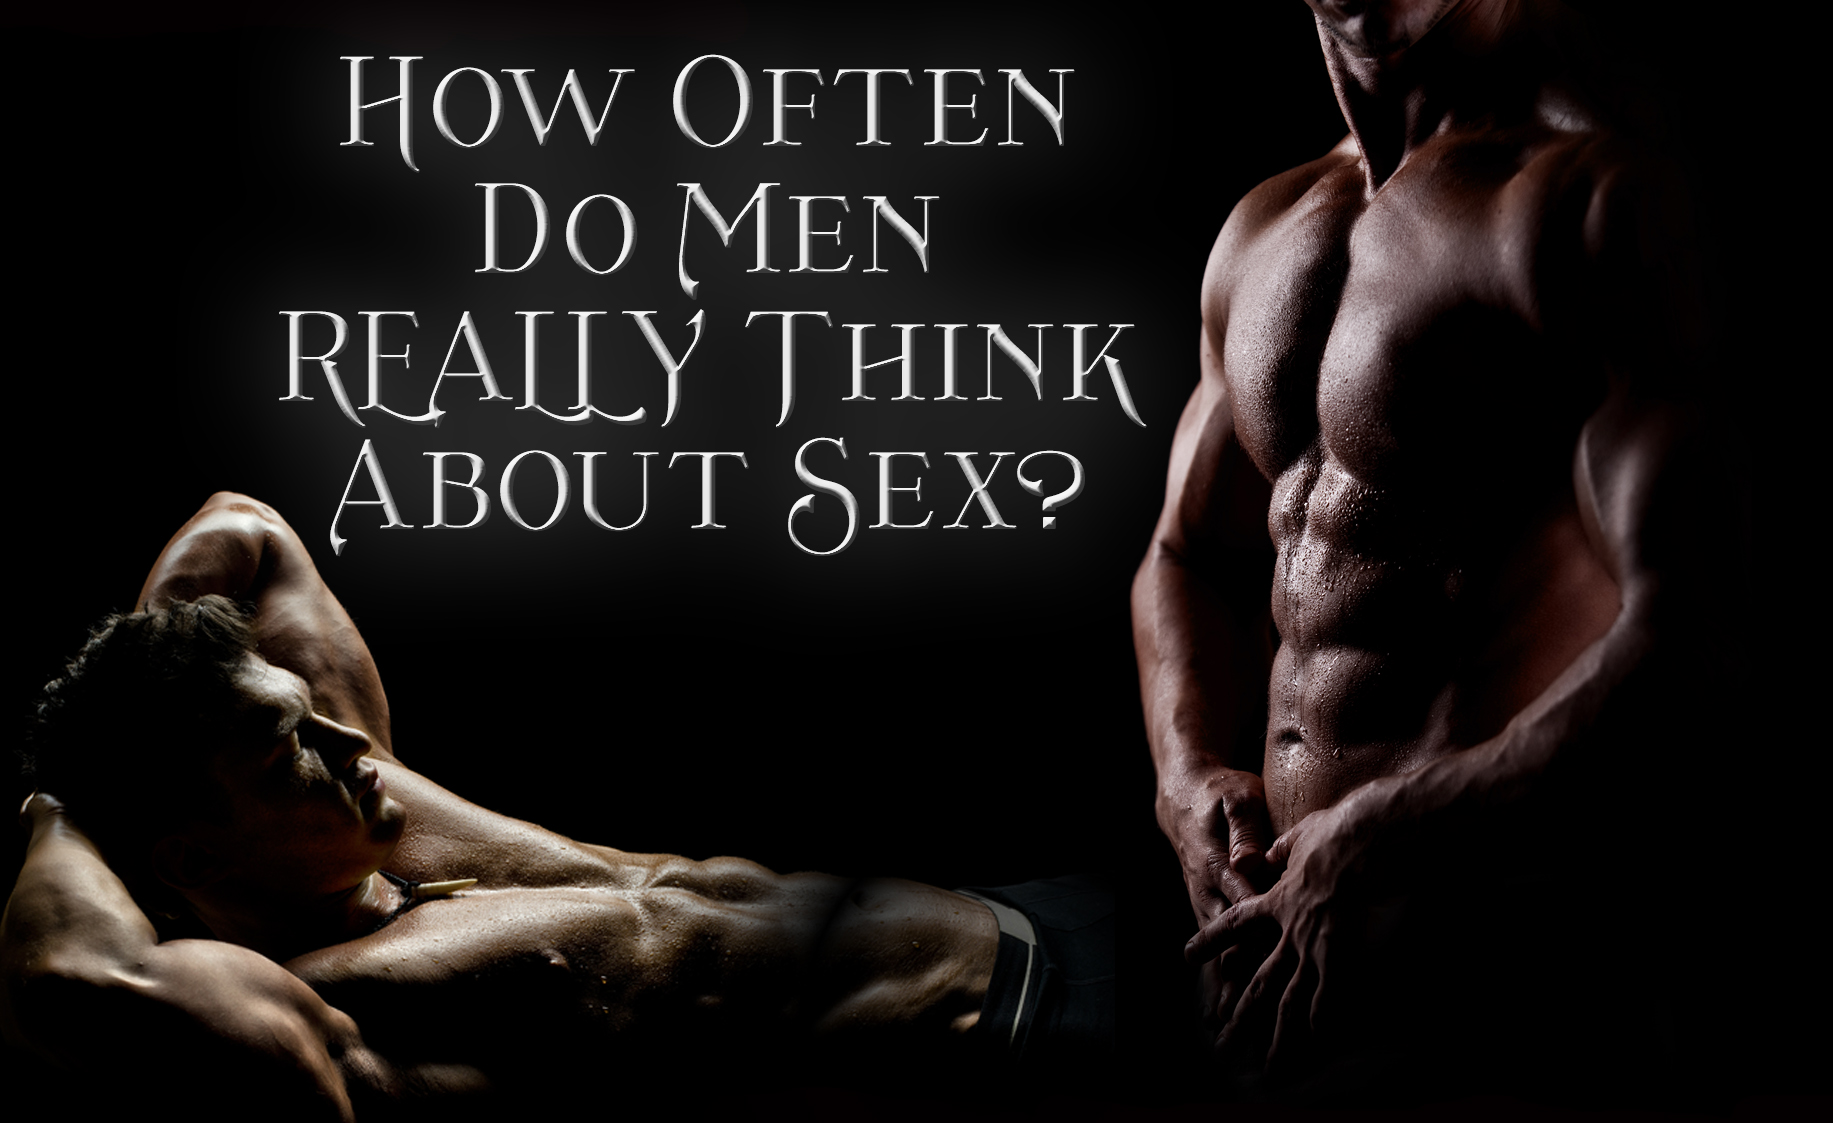 How often does a guy think about sex